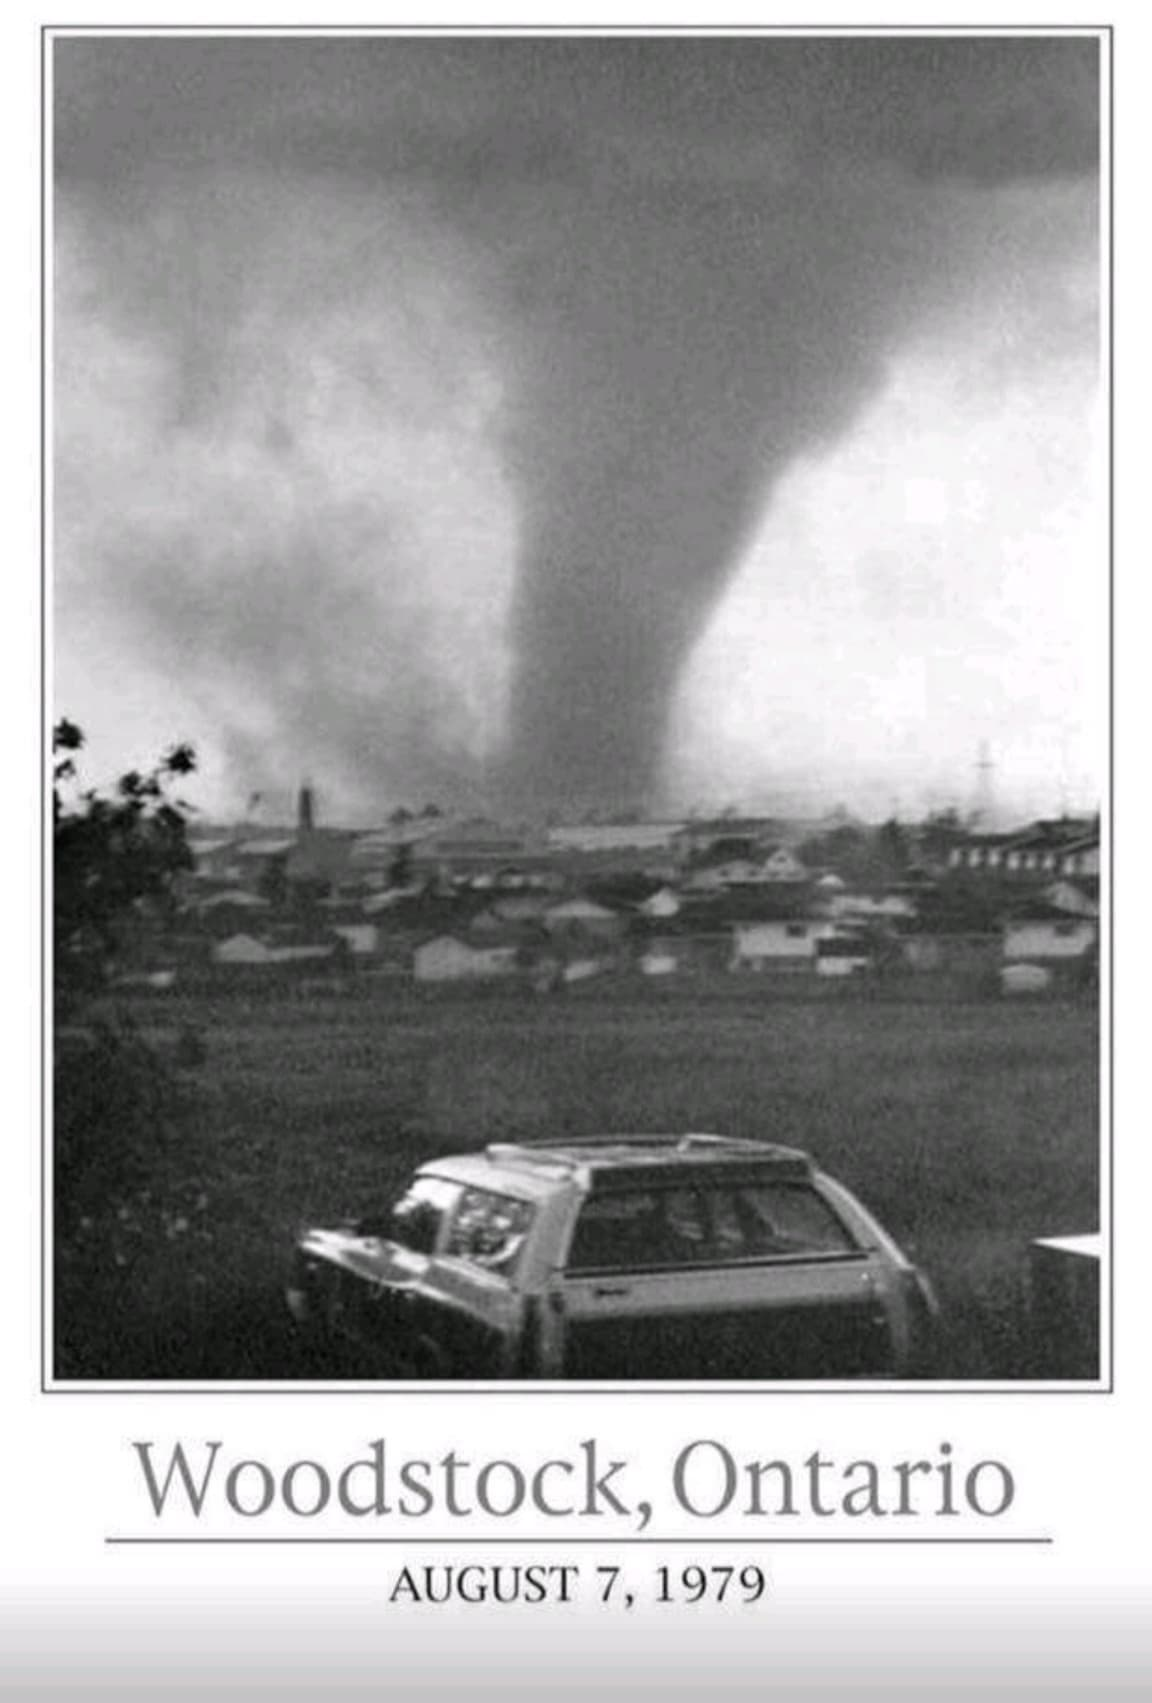 Remembering the Woodstock, Ontario F4 Tornadoes - August 7th, 1979